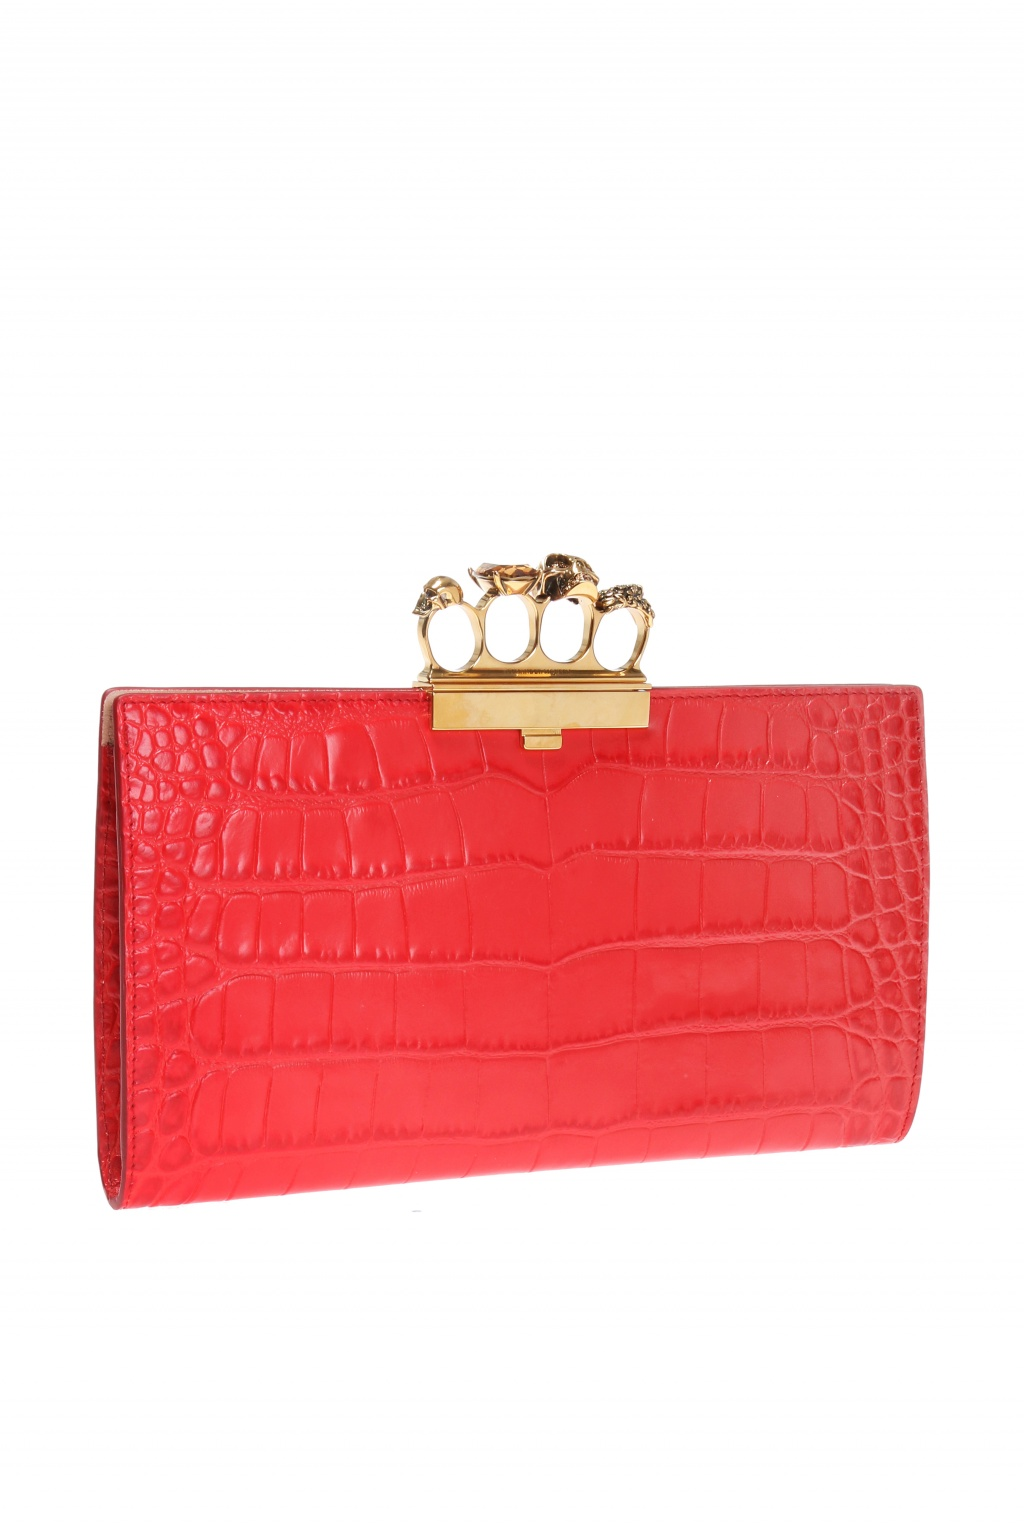 Alexander McQueen Clutch with knuckle-duster shaped handle